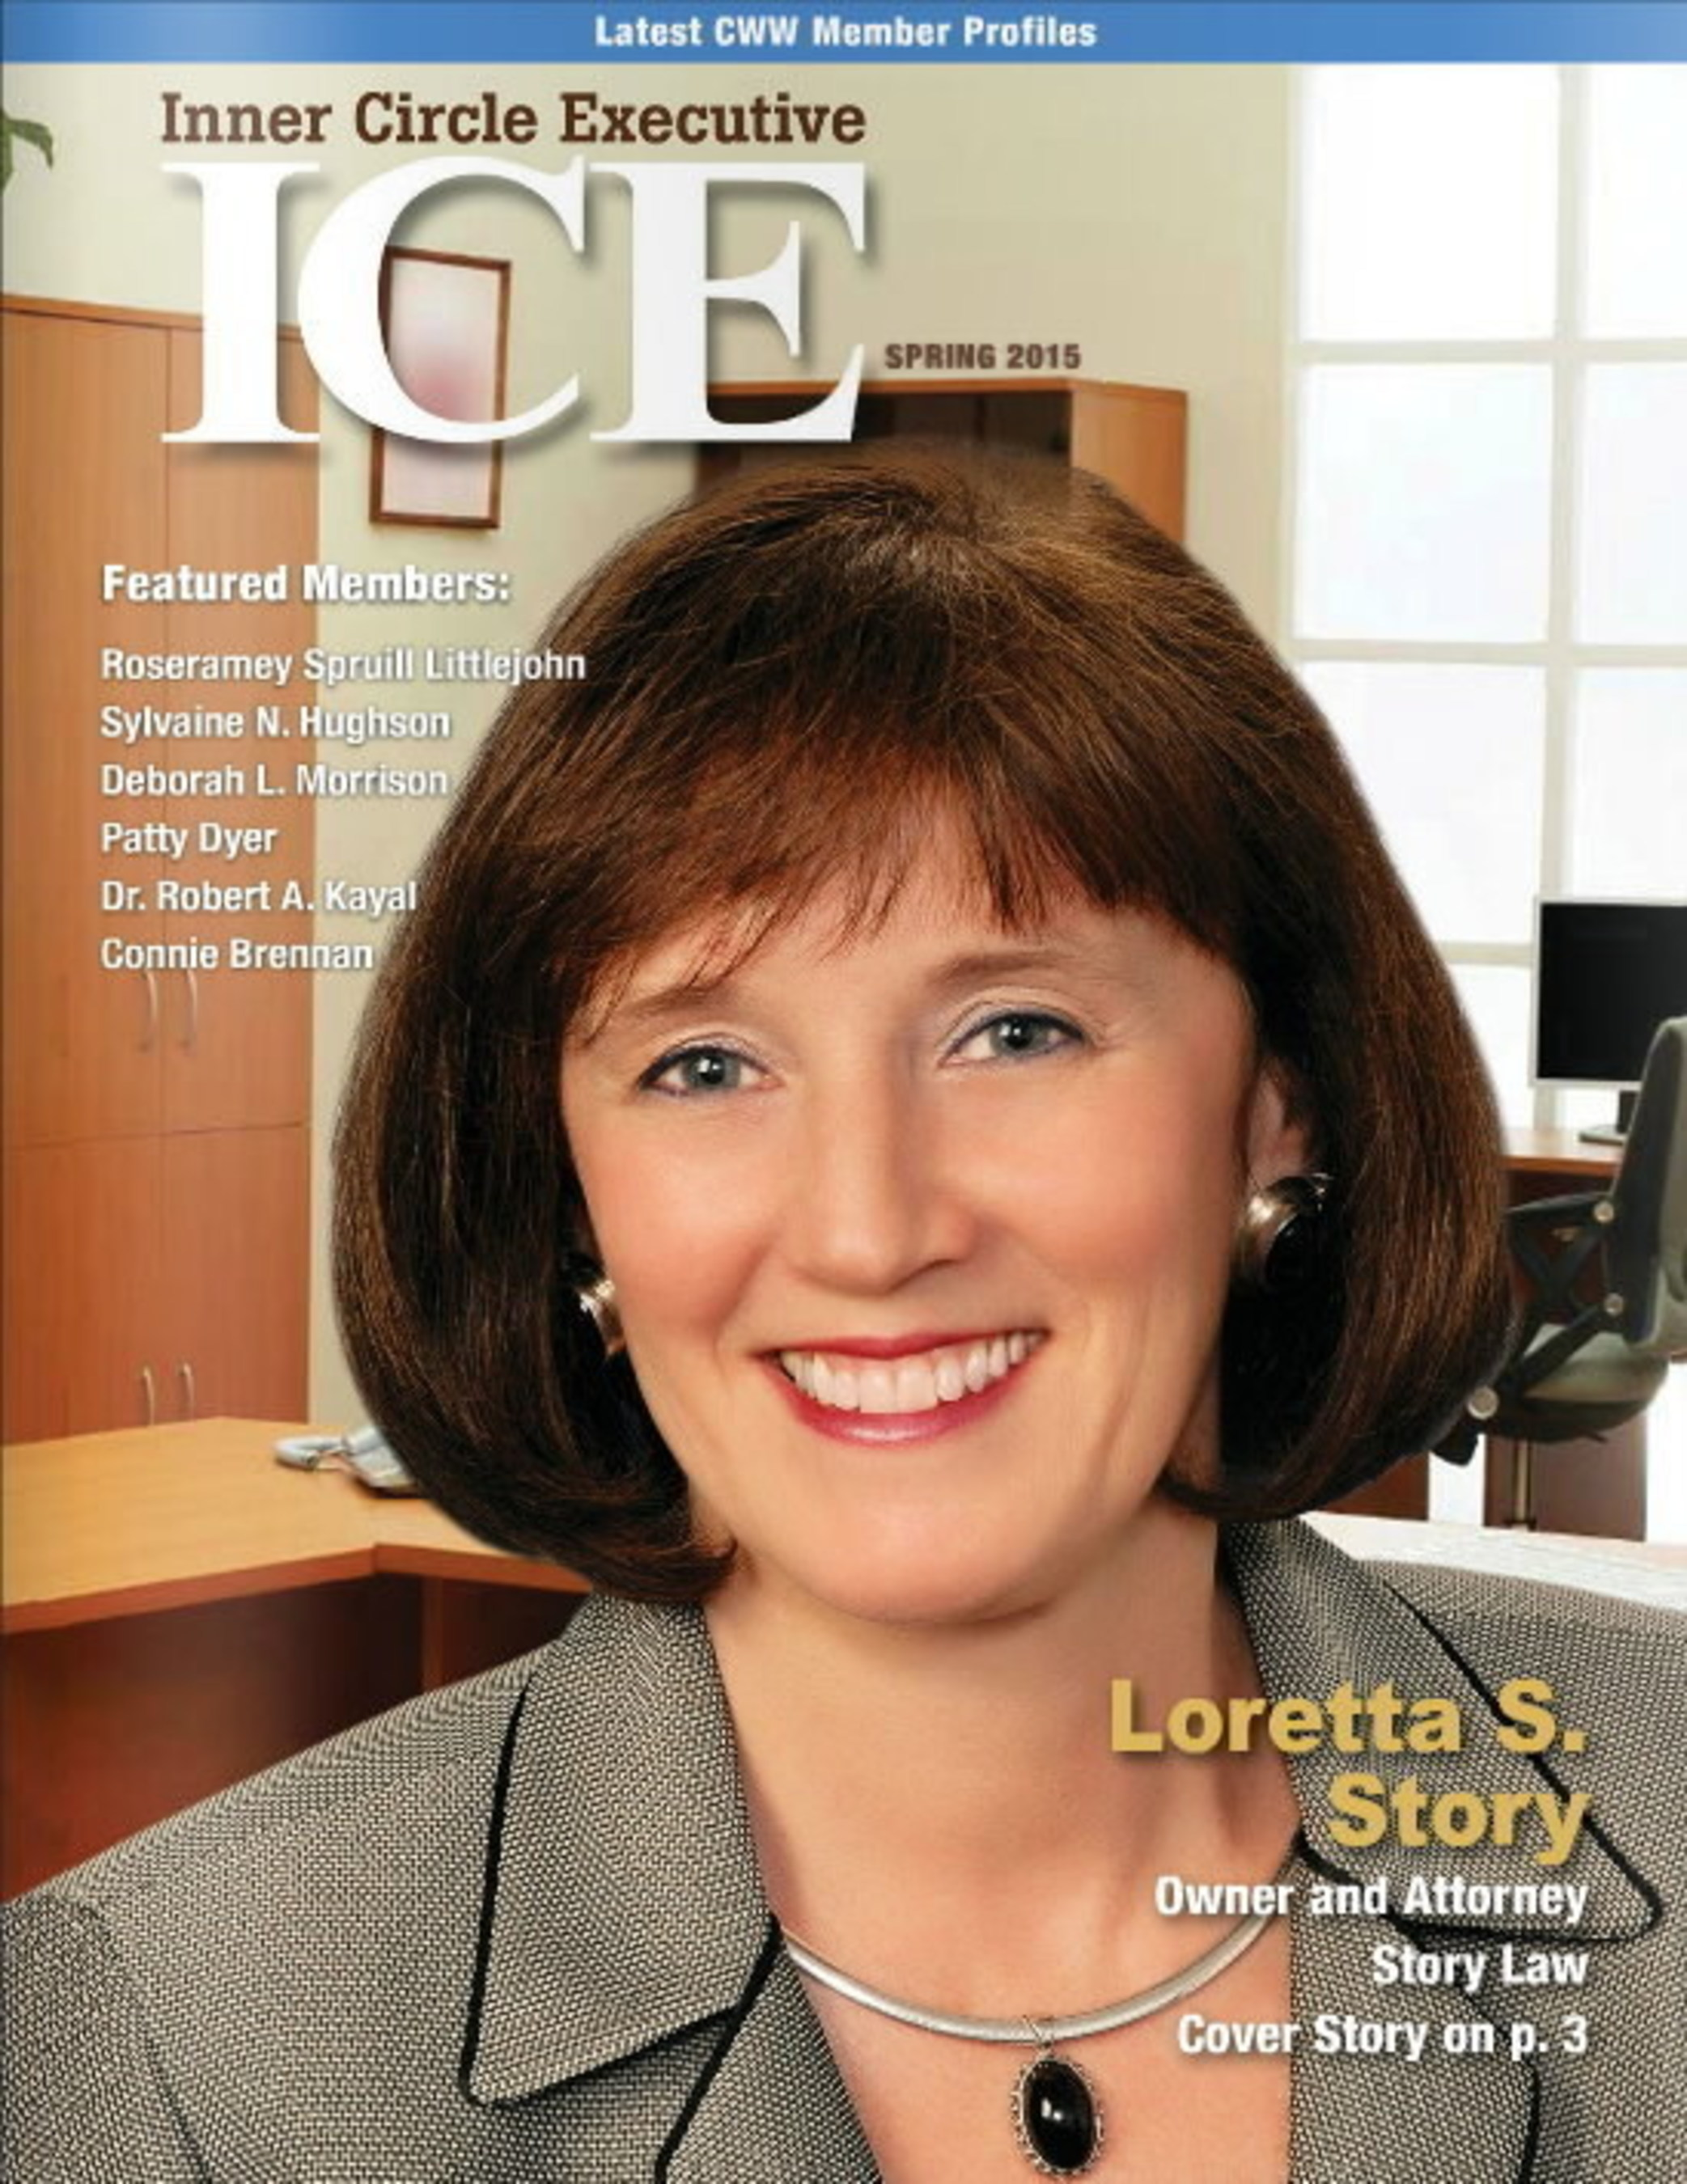 Continental Who's Who is proud to announce the release of the latest issue of ICE Magazine